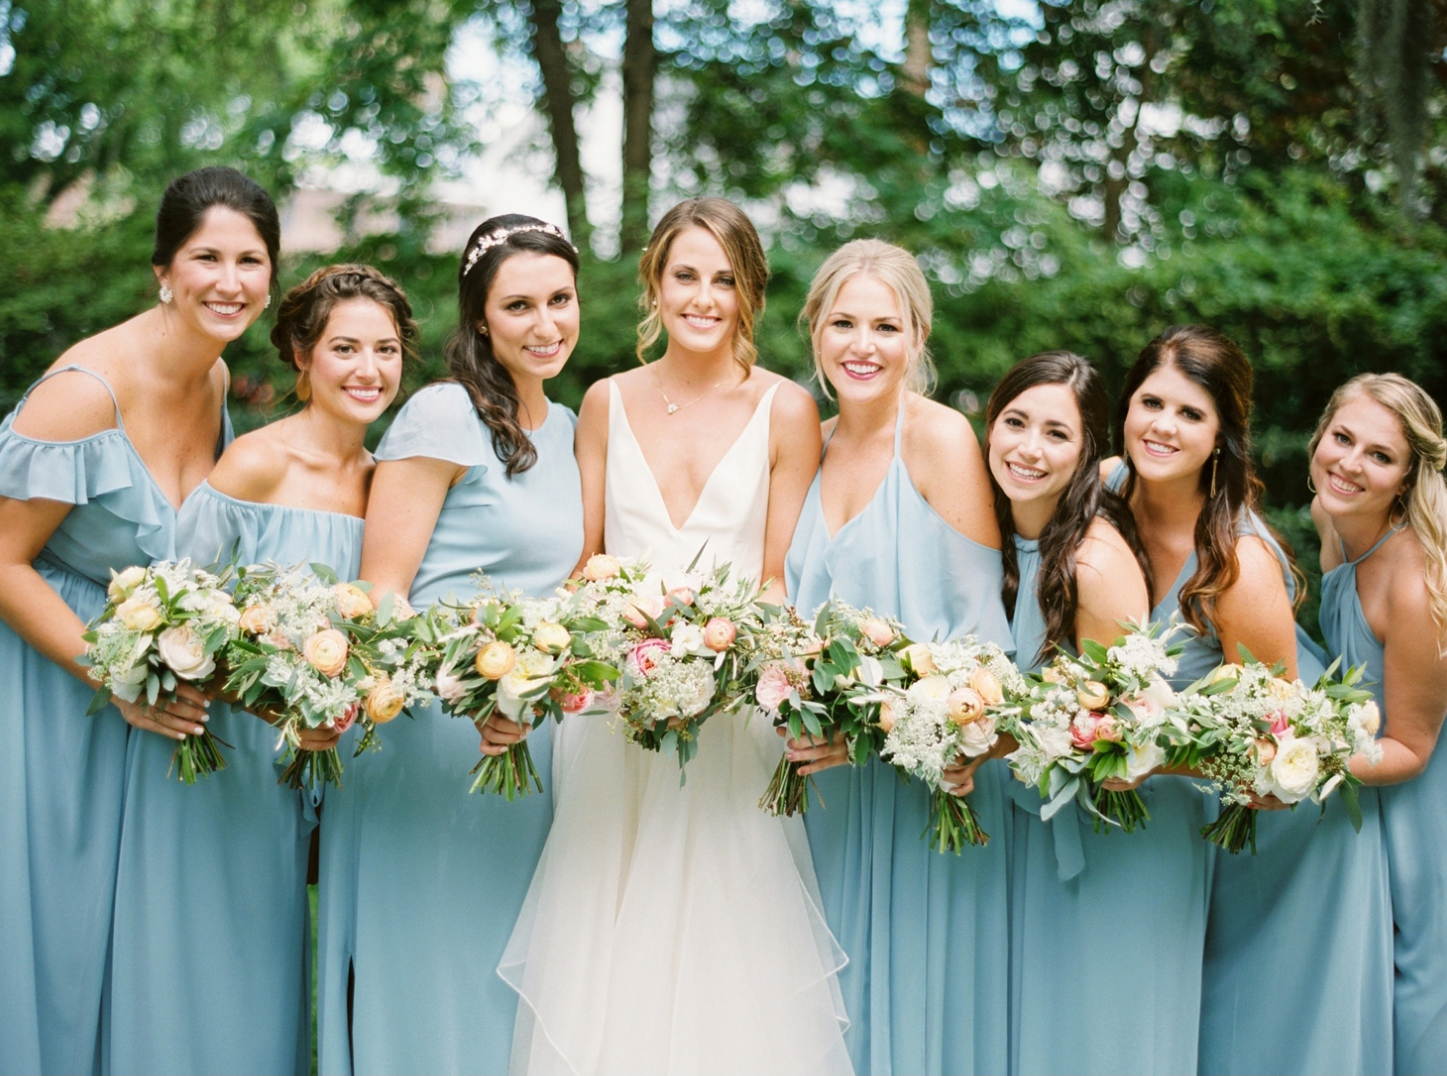 Bridesmaids in Sky Blue